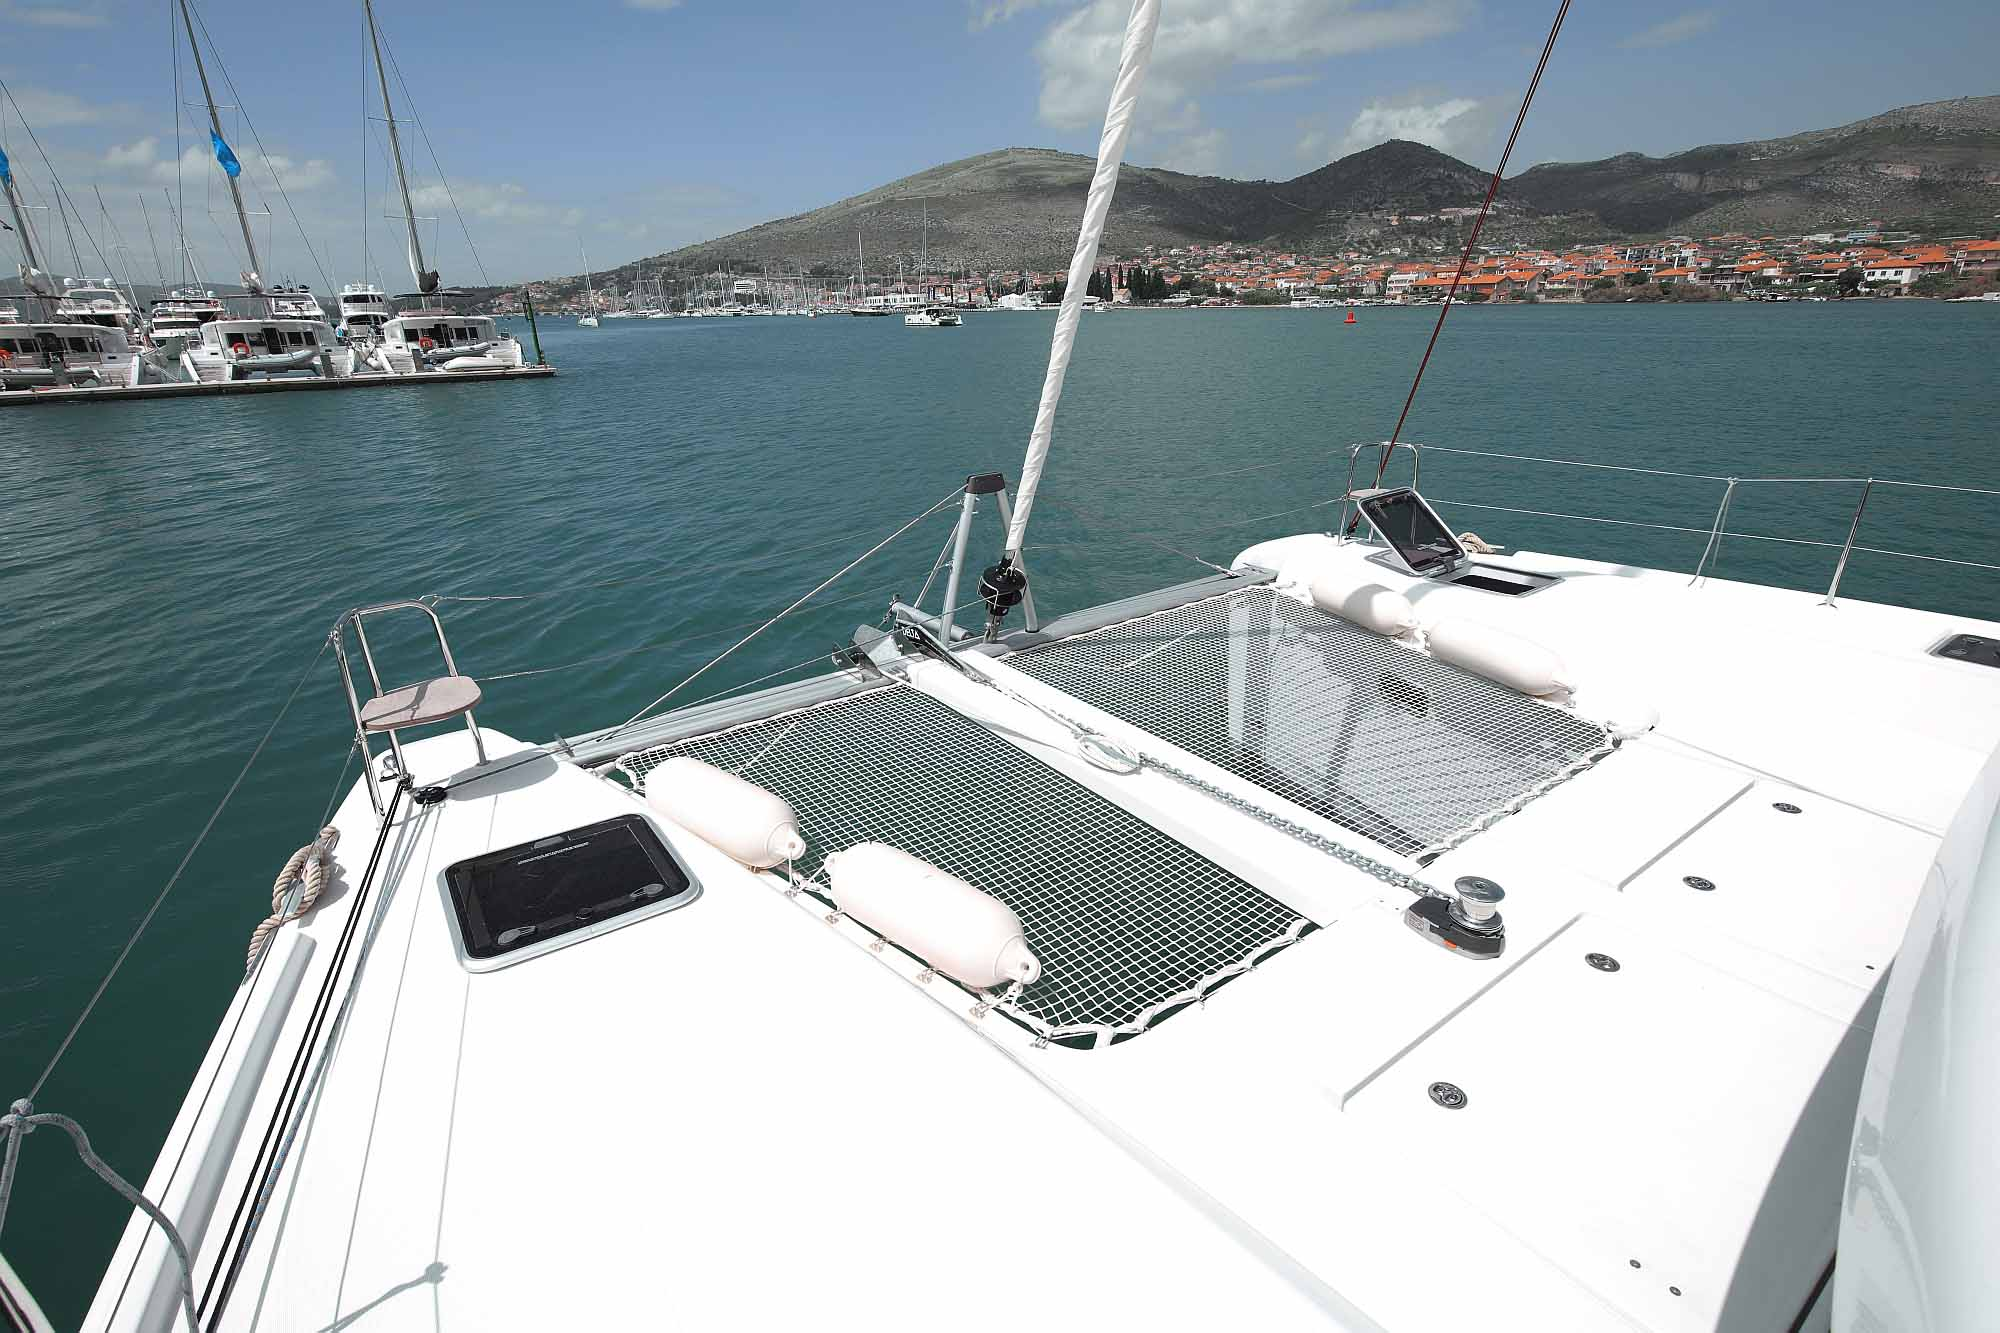 Catamaran Lagoon 42 trampoline: athing fun and relaxing - chilling aereas